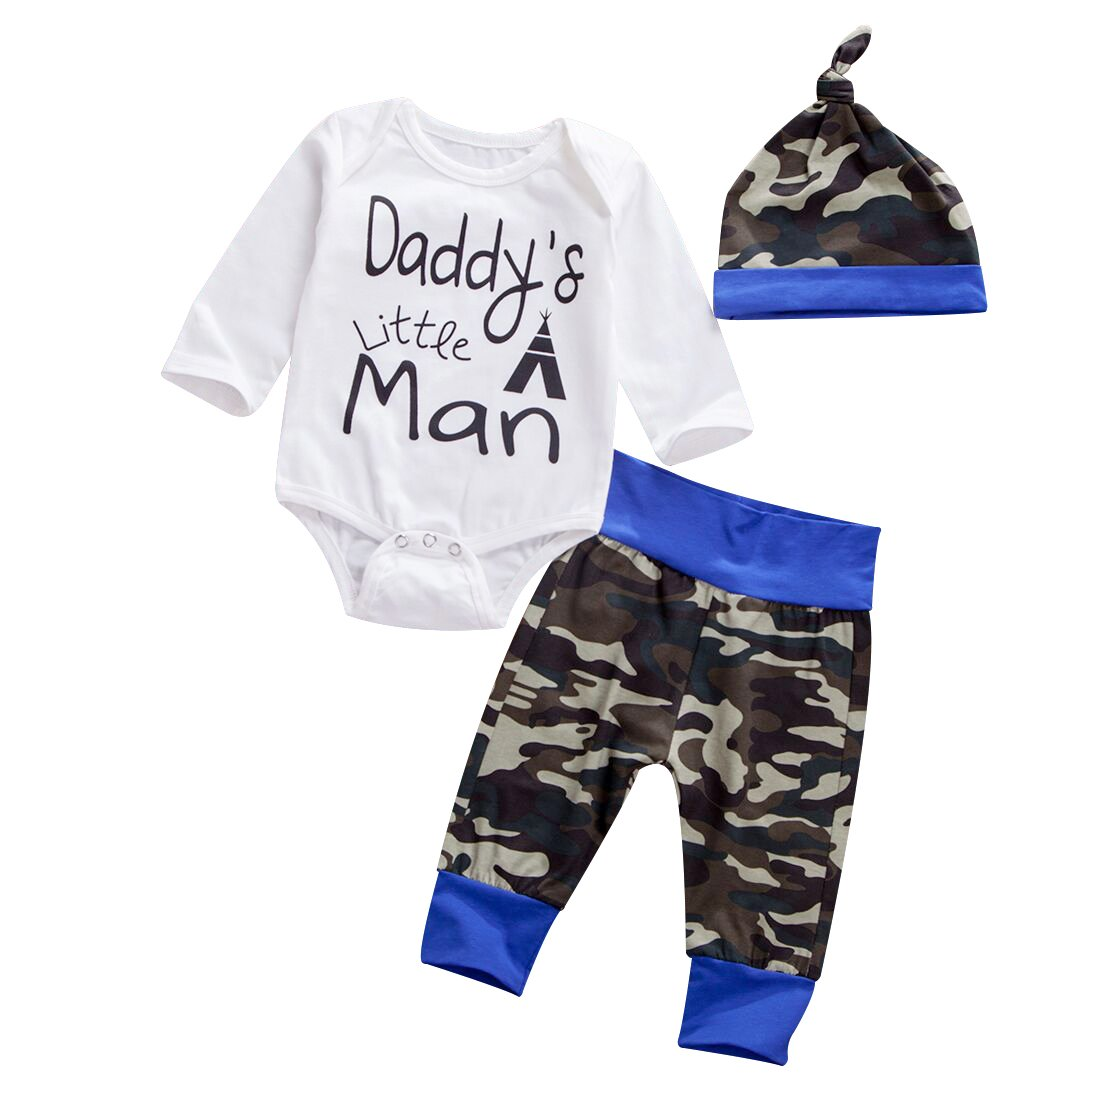 Emmababy Newborn Daddy's Little Man Print Baby Boys Girls Romper +Camo Cotton Long Pants +Hat Outfit